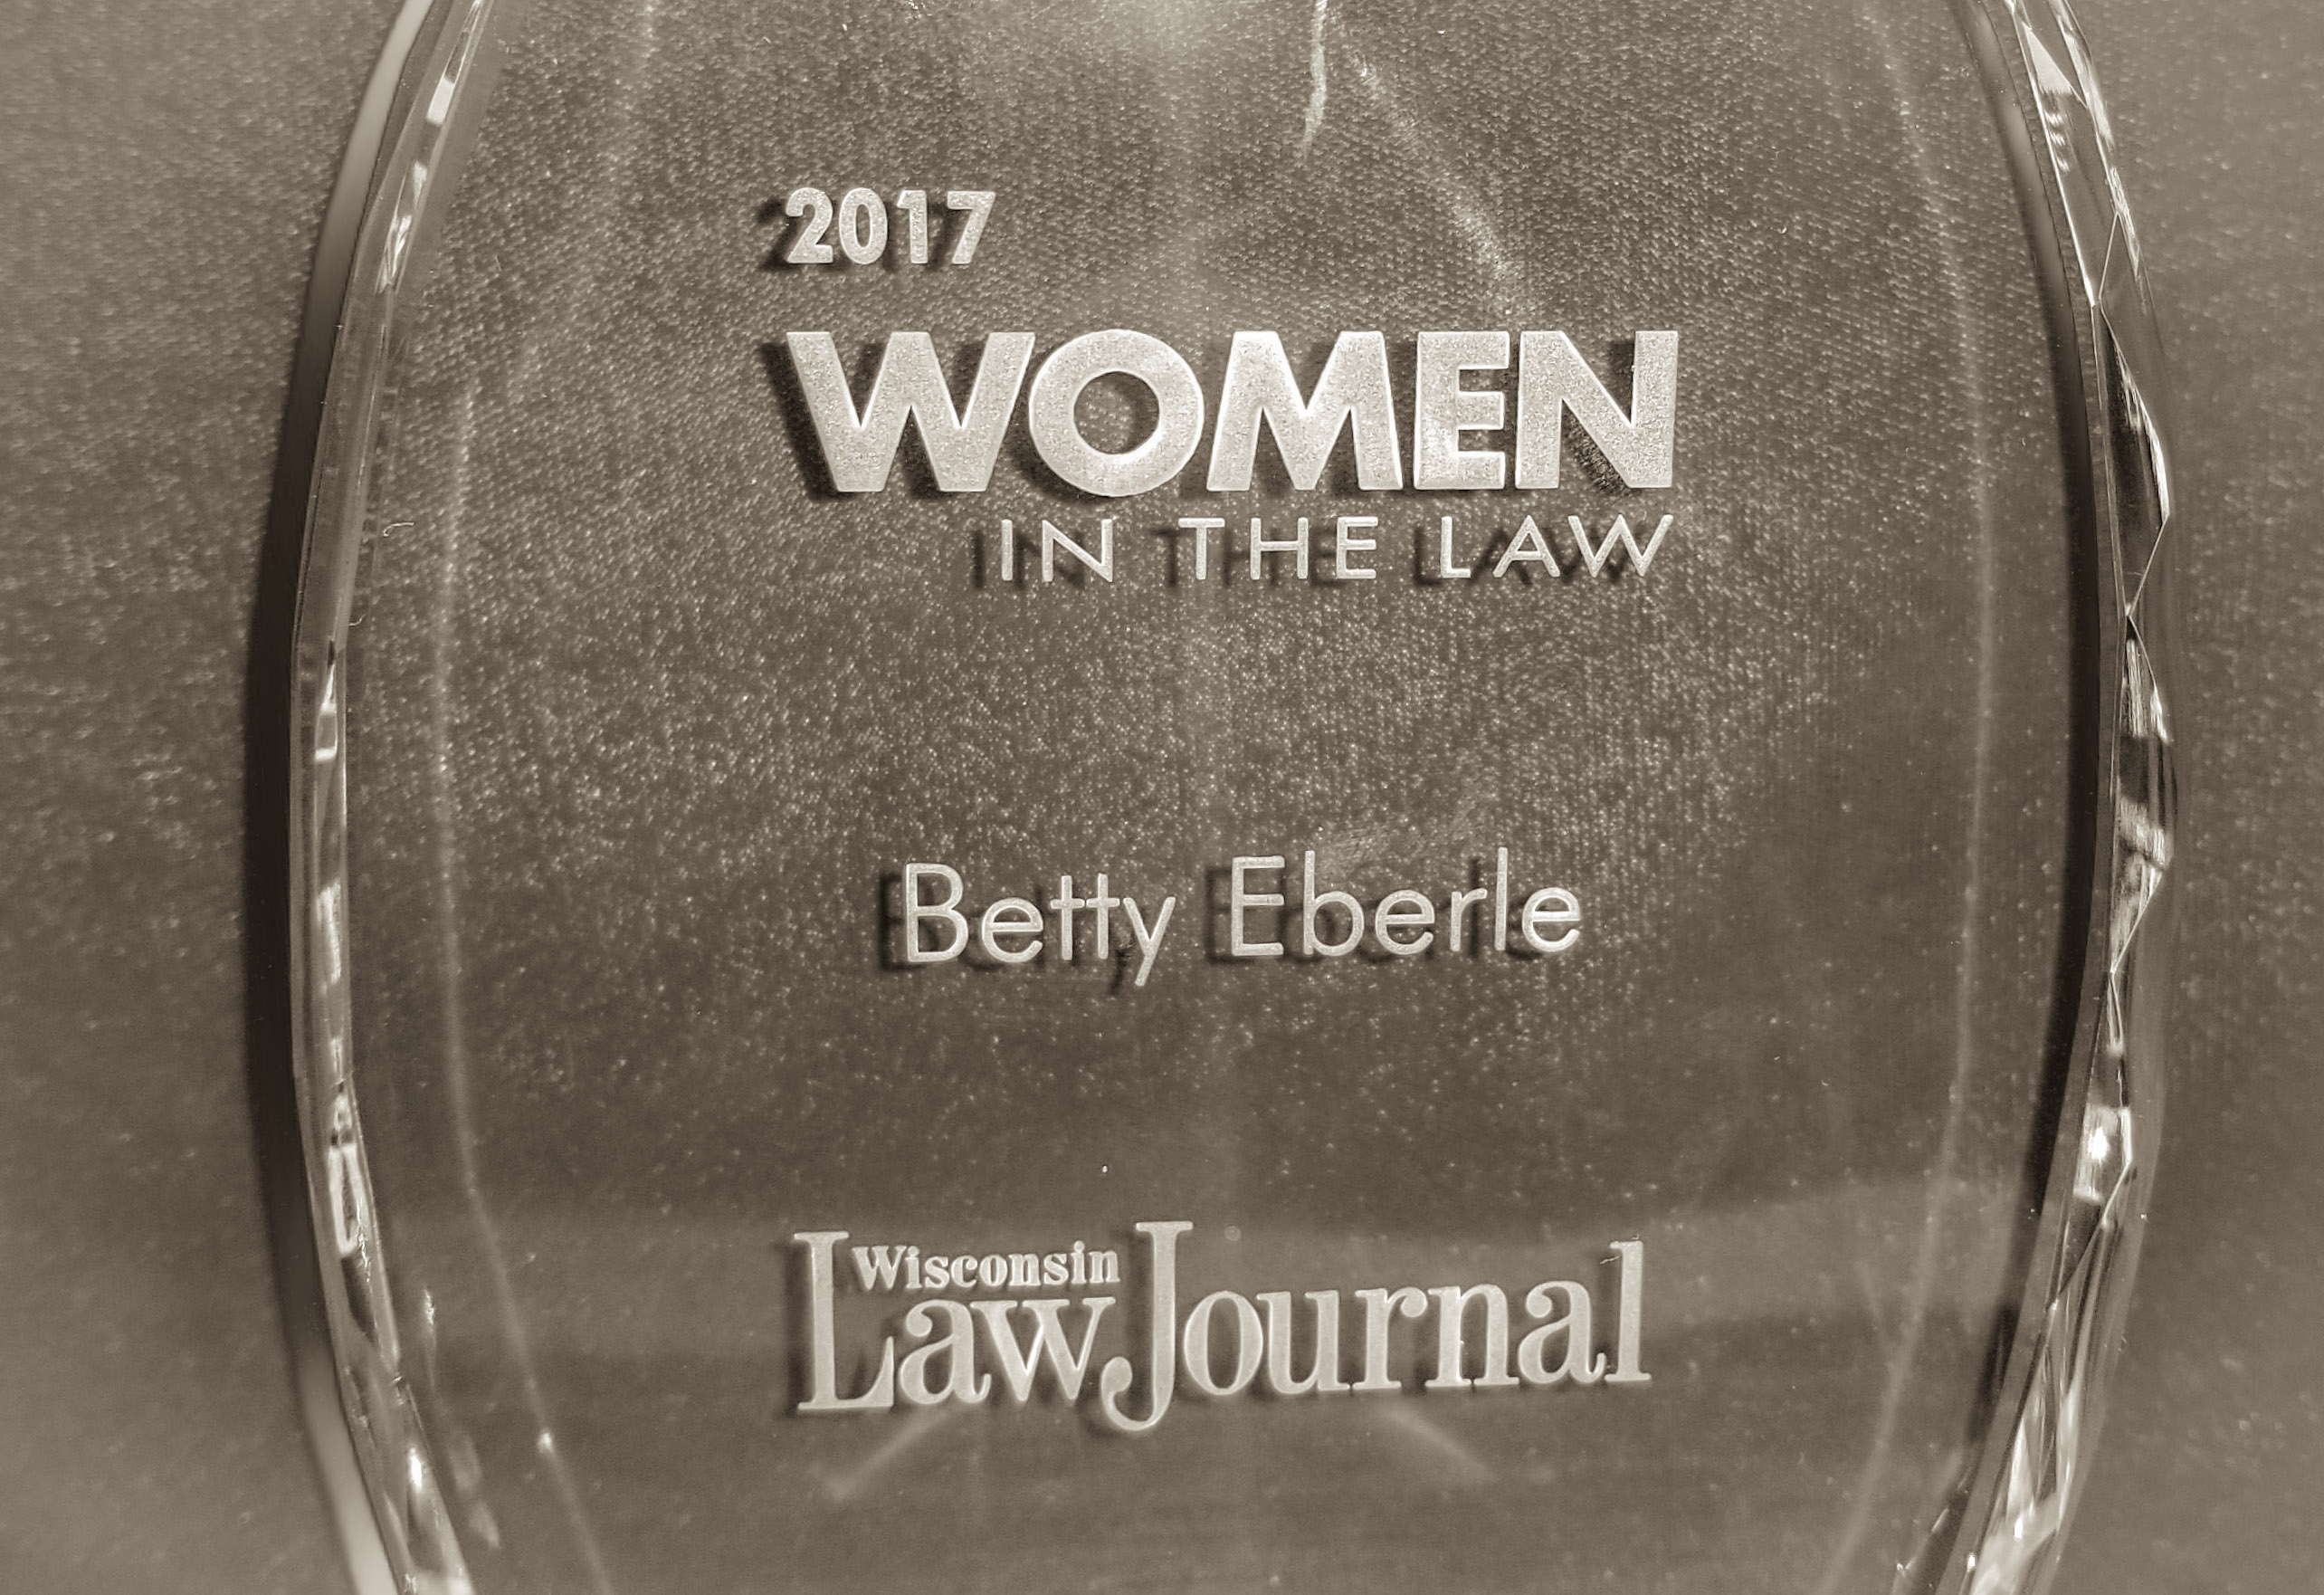 Betty Eberle Receives 2017 Women in the Law Award